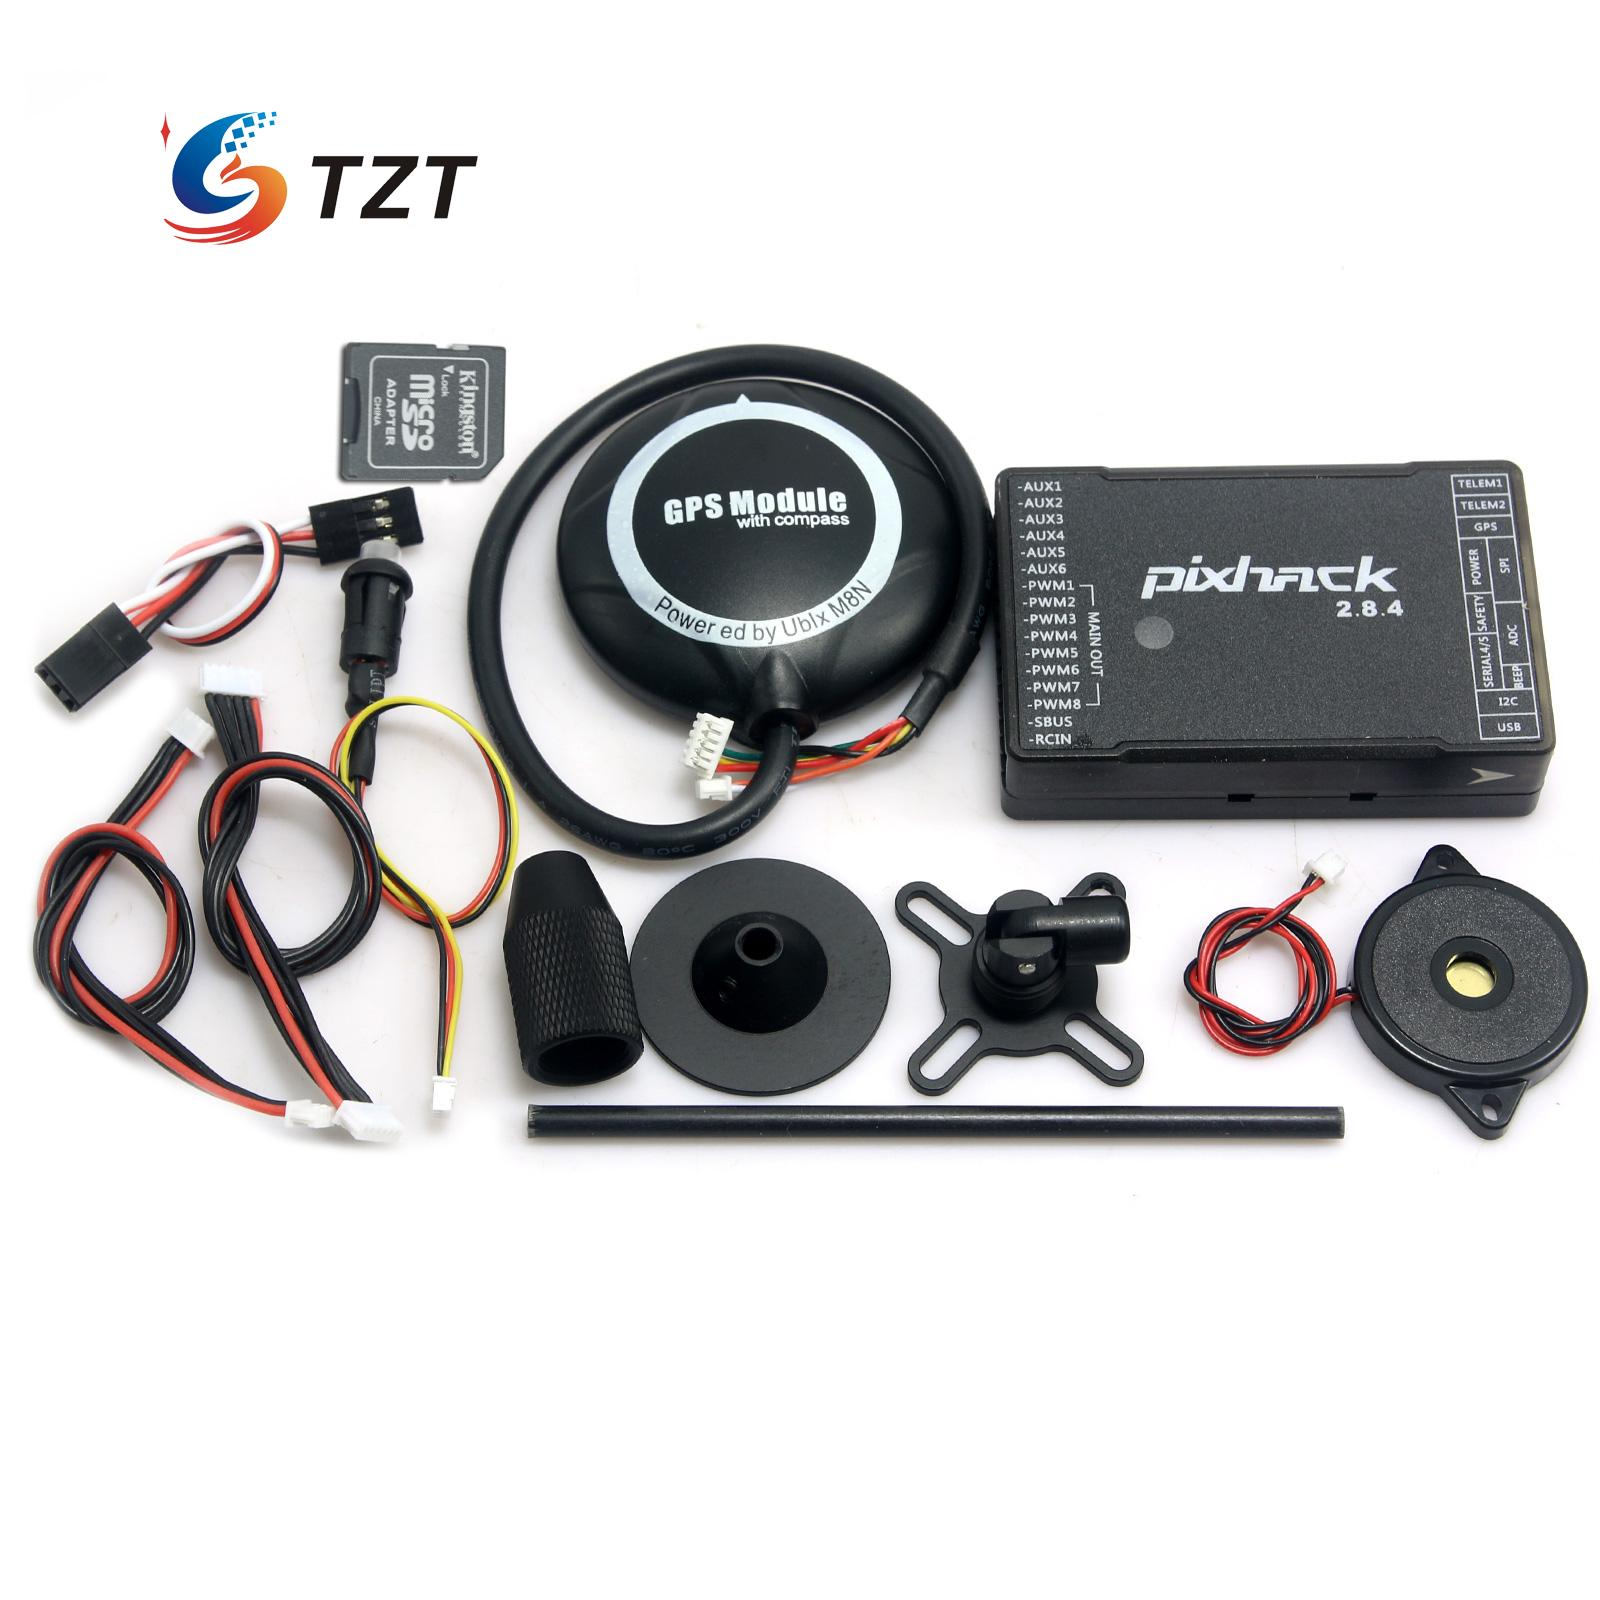 FPV Pixhack 2.8.4 Flight Controller 32Bit Open Source Based on Pixhawk+Ublox M8N GPS with Compass for Drone Quadcopter free shipping ublox neo m8n mag v2 m8n gps module with compass gps support mount for apm2 8 pixhawk mini apm flight controller